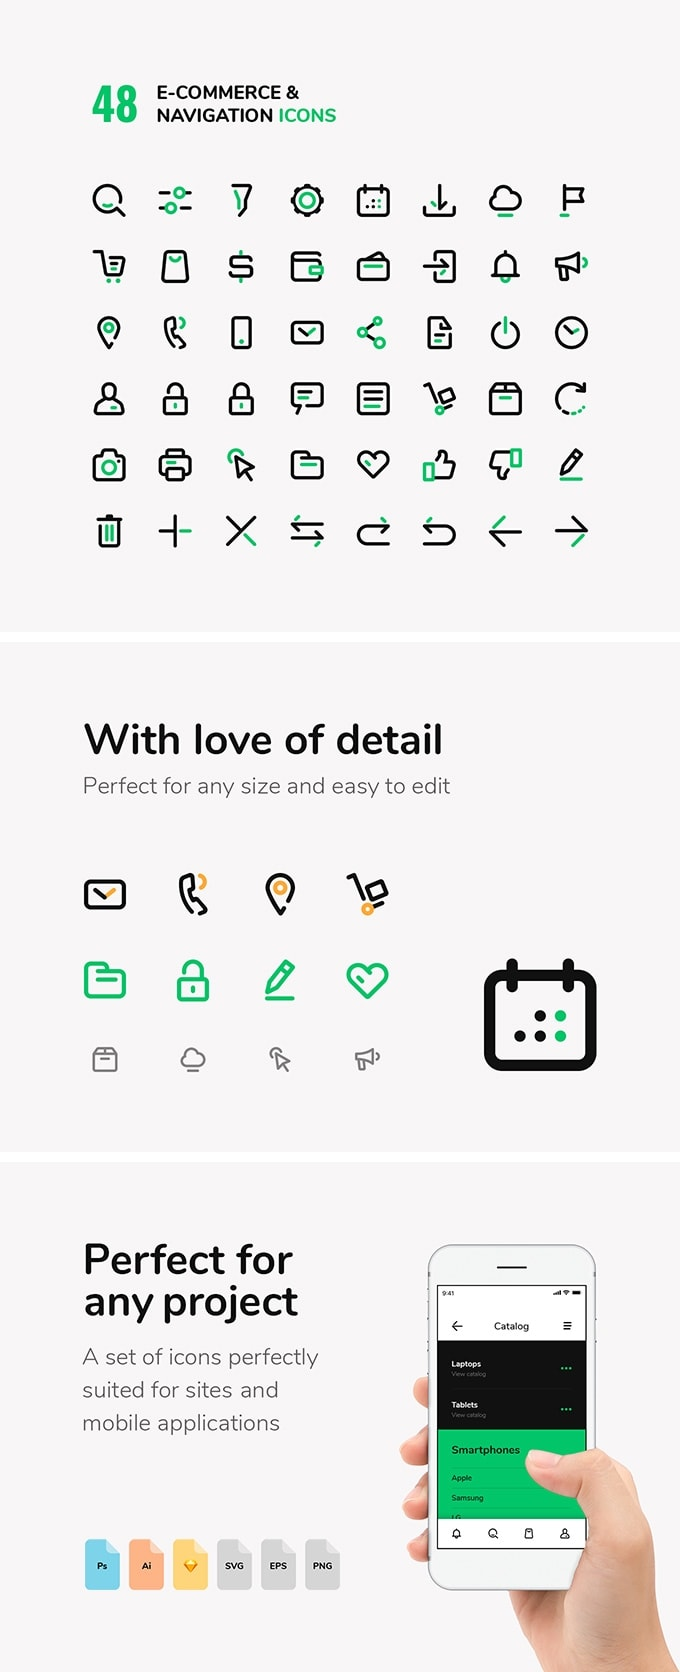 eCommerce & Navigation Icons Set from UIGarage